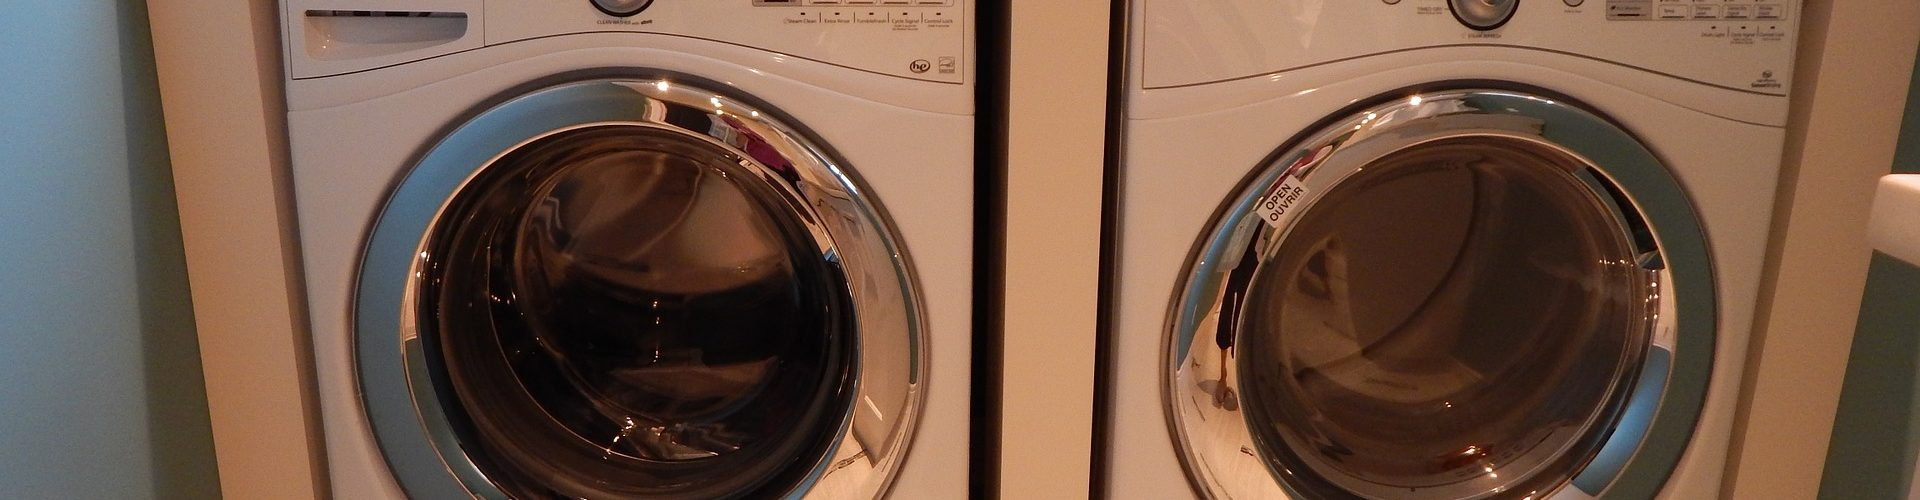 washer dryer white silver